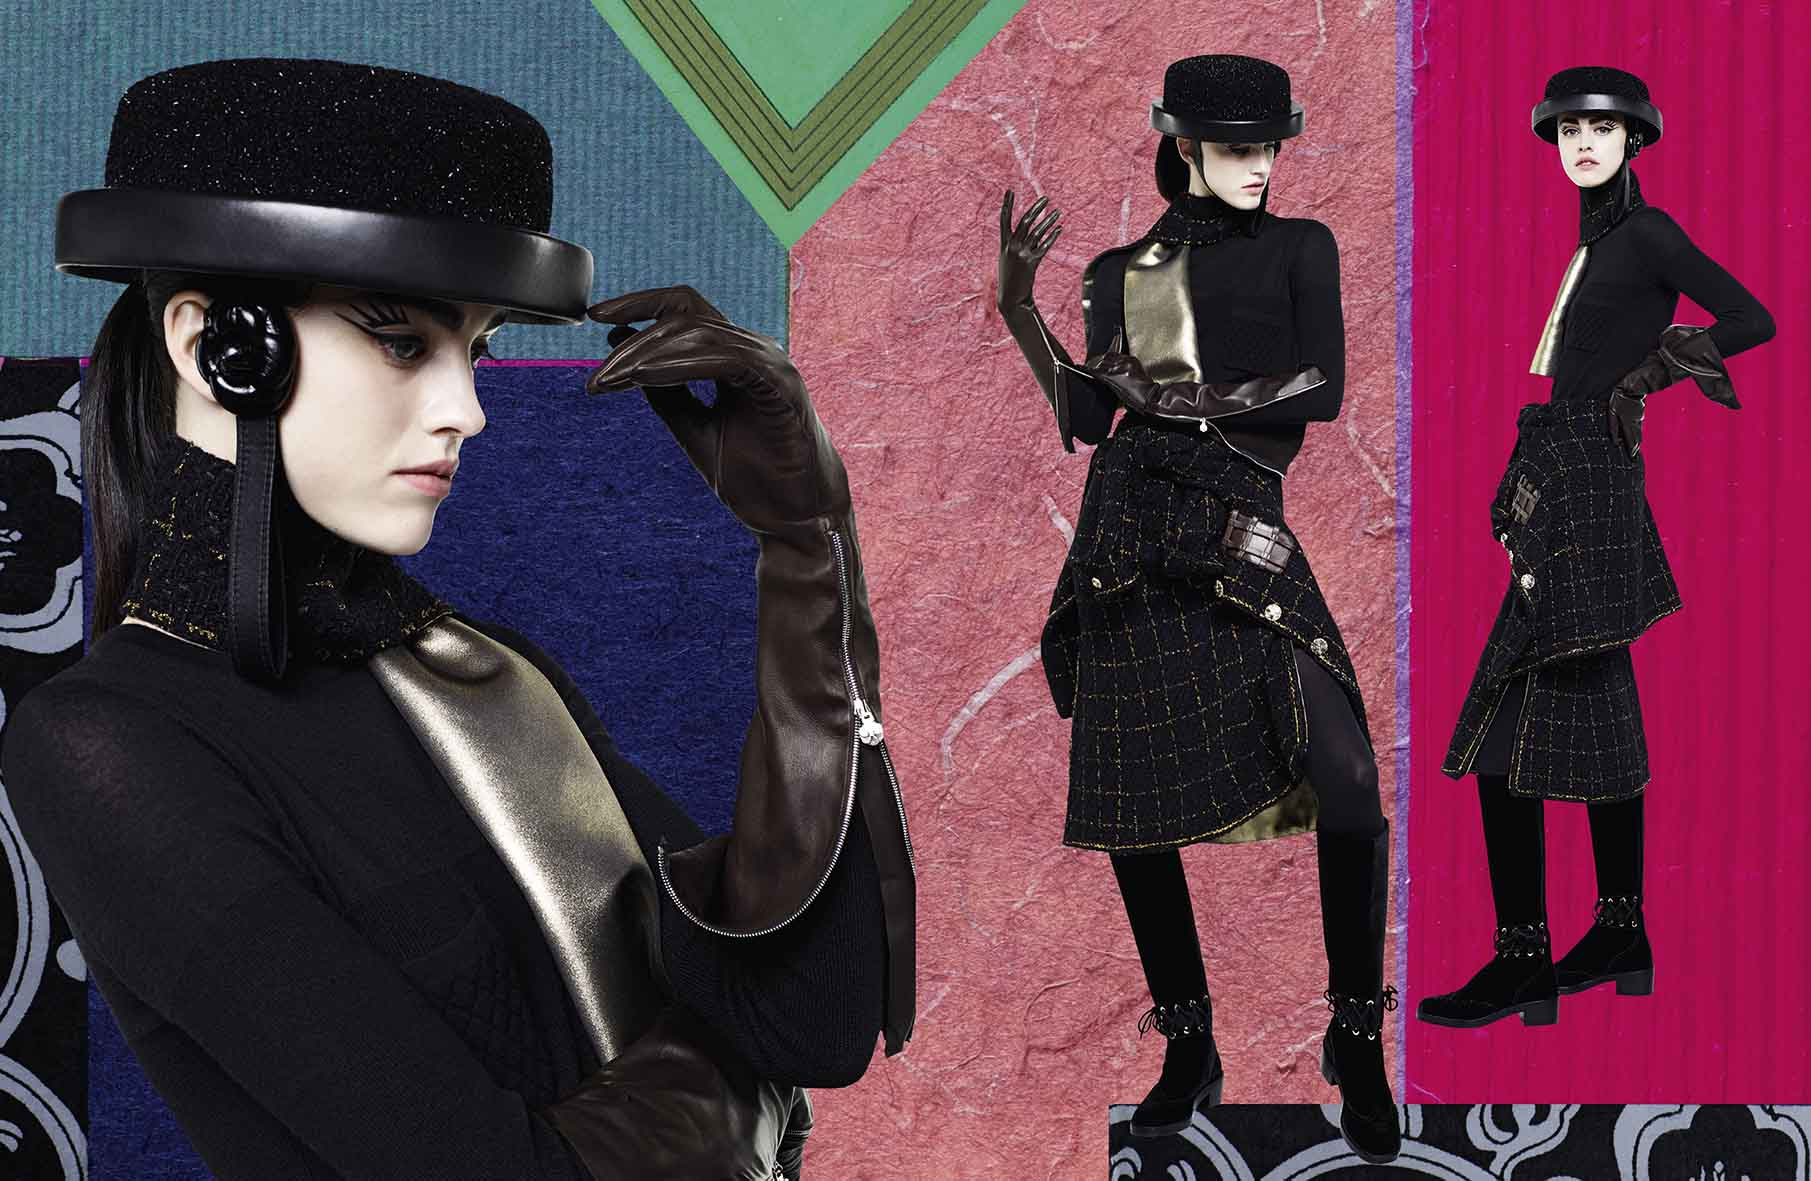 R FW 201617 RTW ad campaign  pictures by Karl Lagerfeld (2)